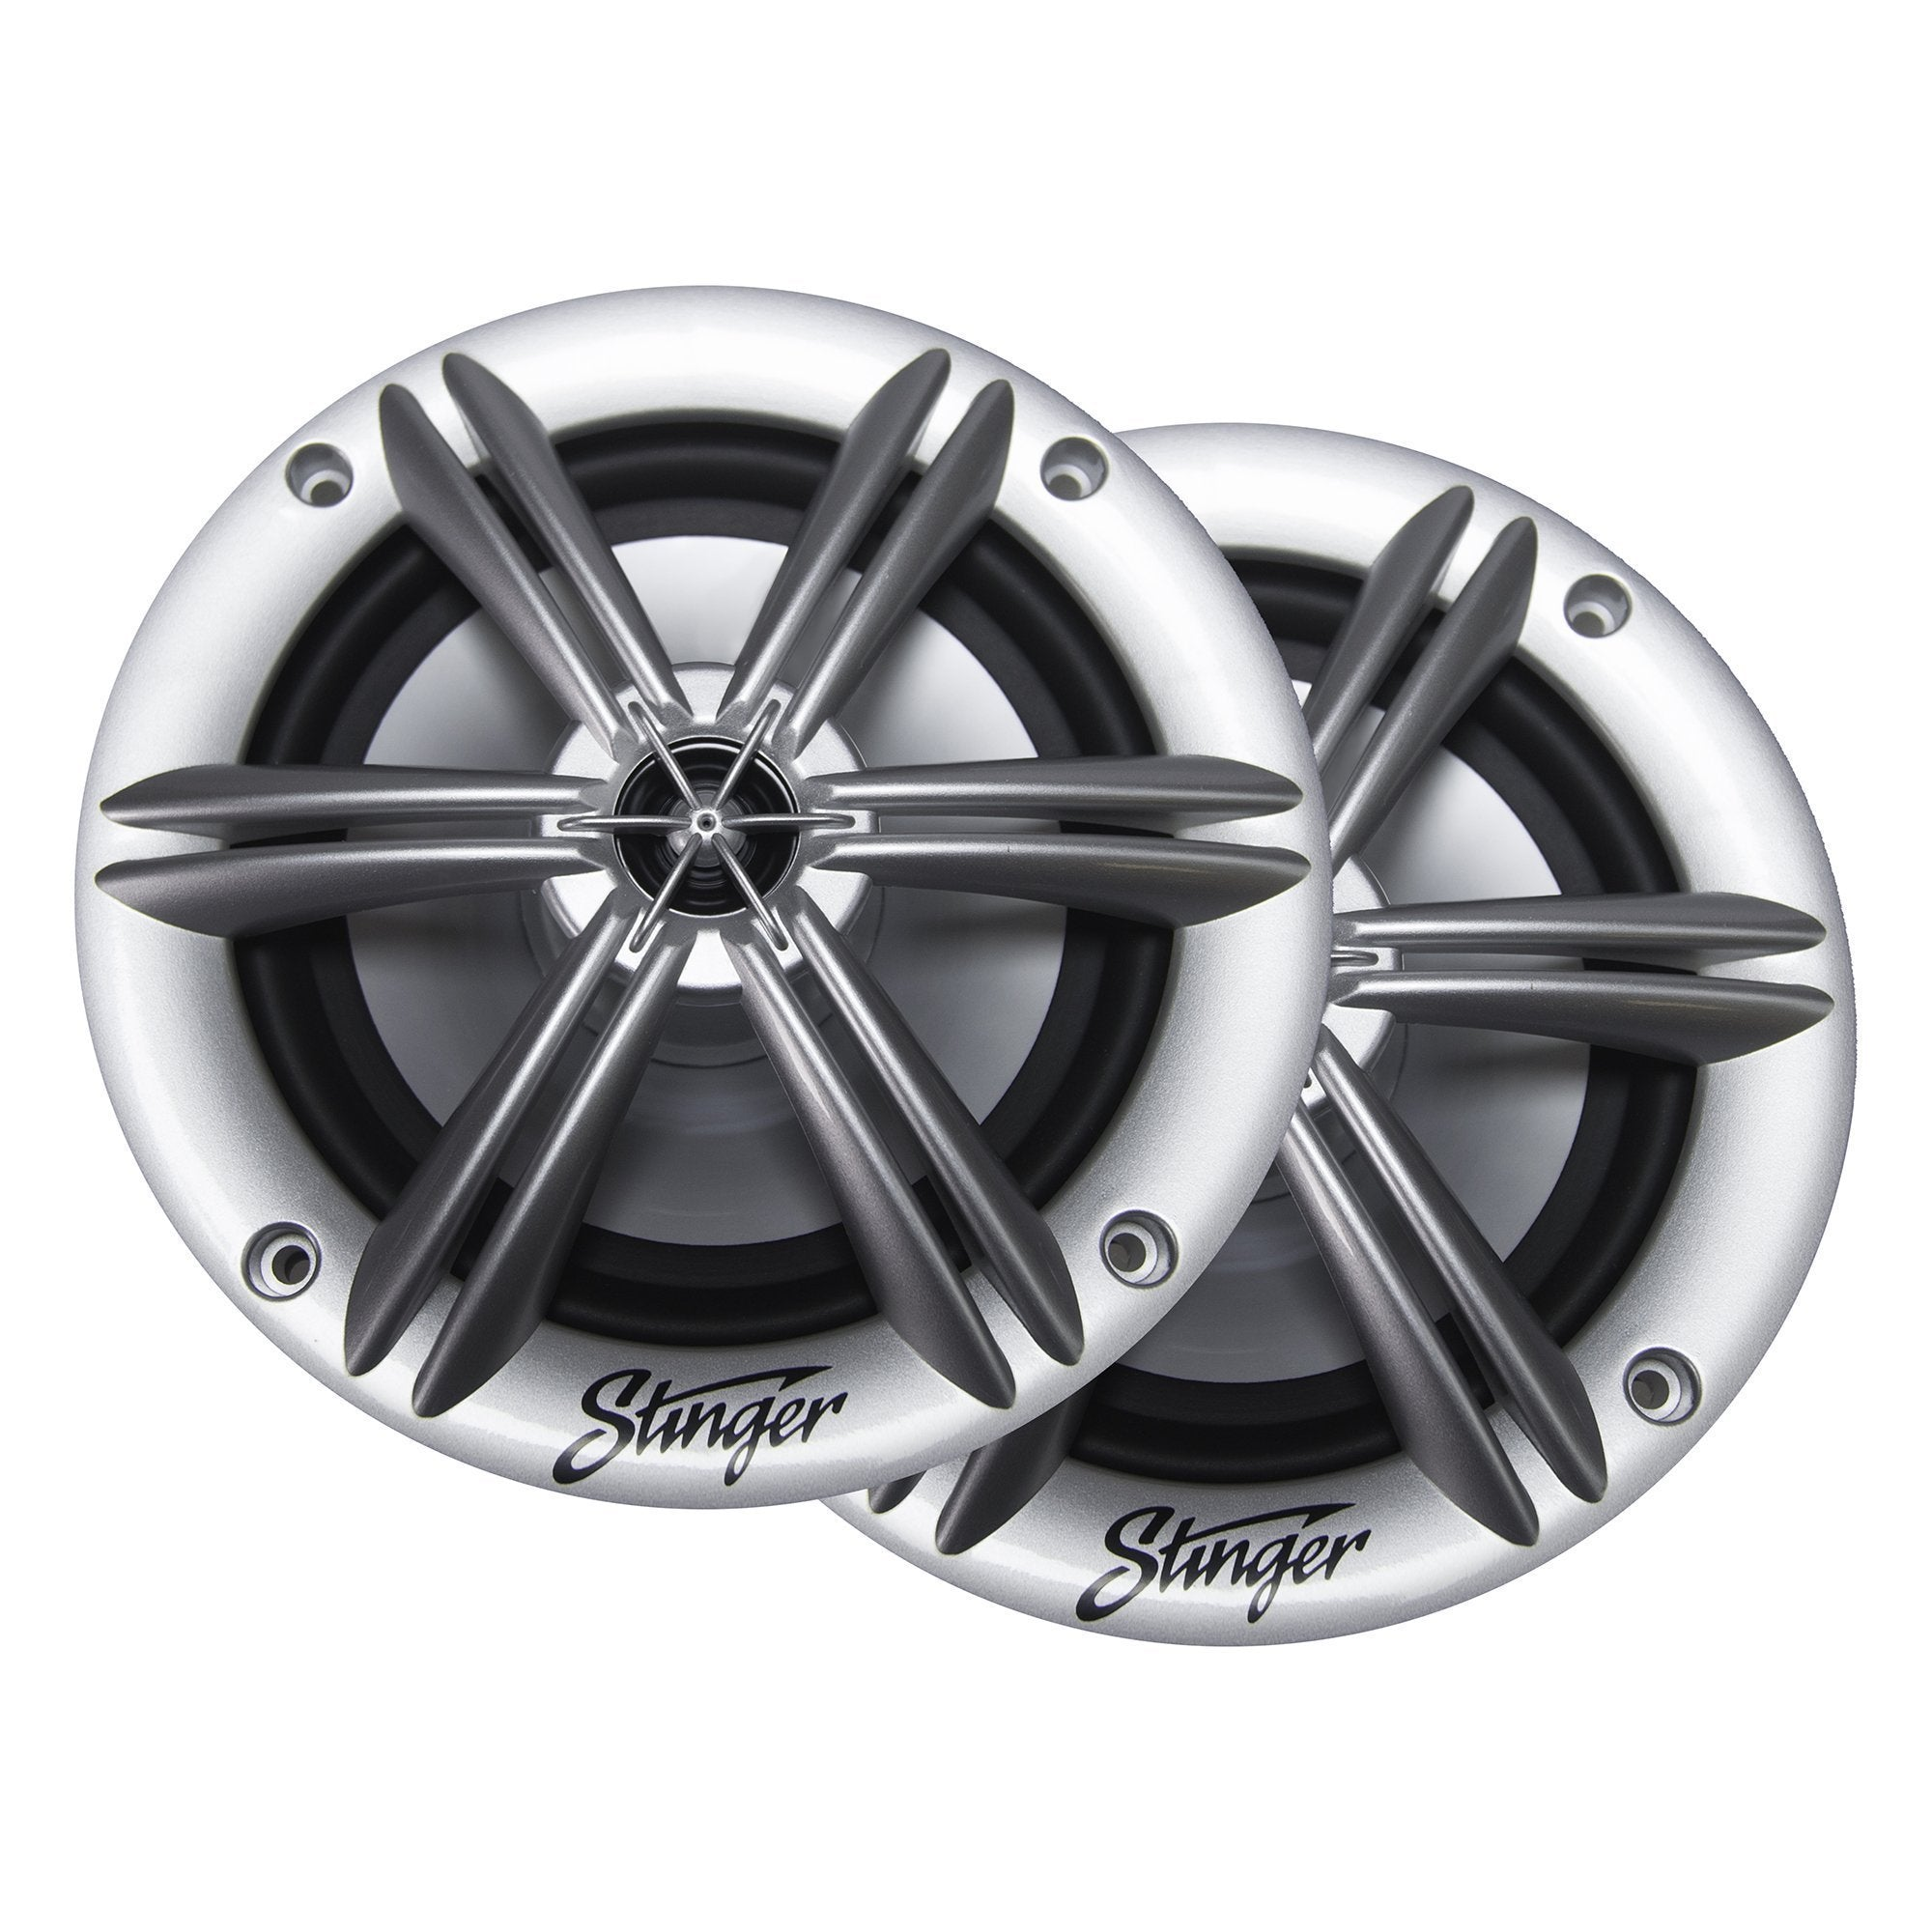 "Marine / Powersports 6.5"" Silver Coaxial Marine Speakers - Phoenix Gold"